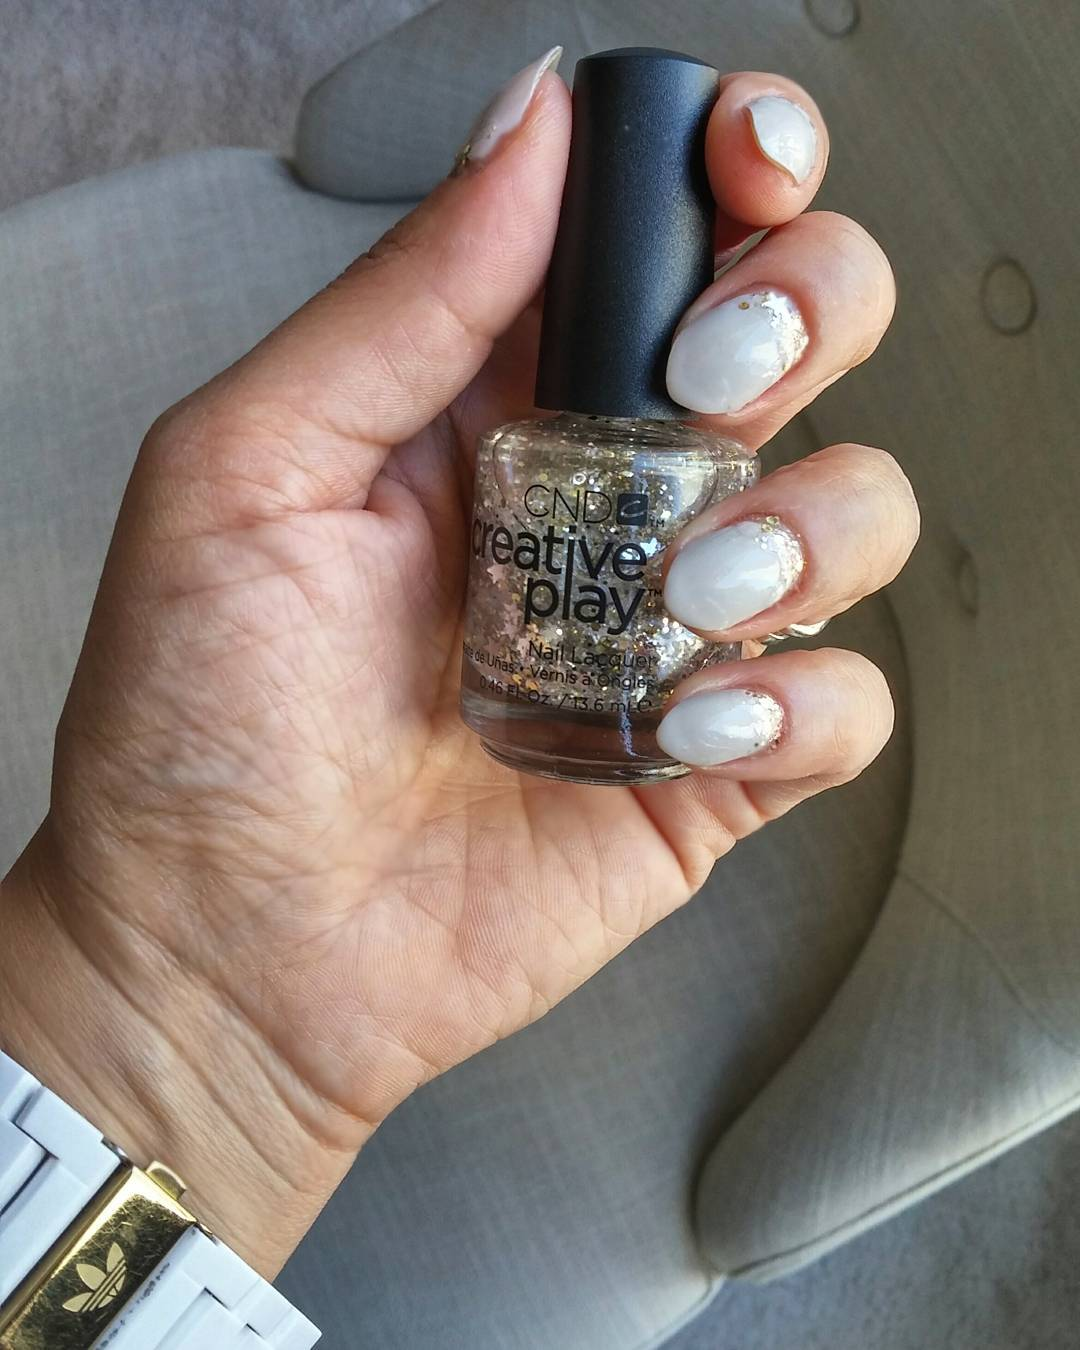 Thx to @cndcanada crwative play in #stellabration, my grown out CND #shellac in #cityscape is saved! #glittertotherescue!